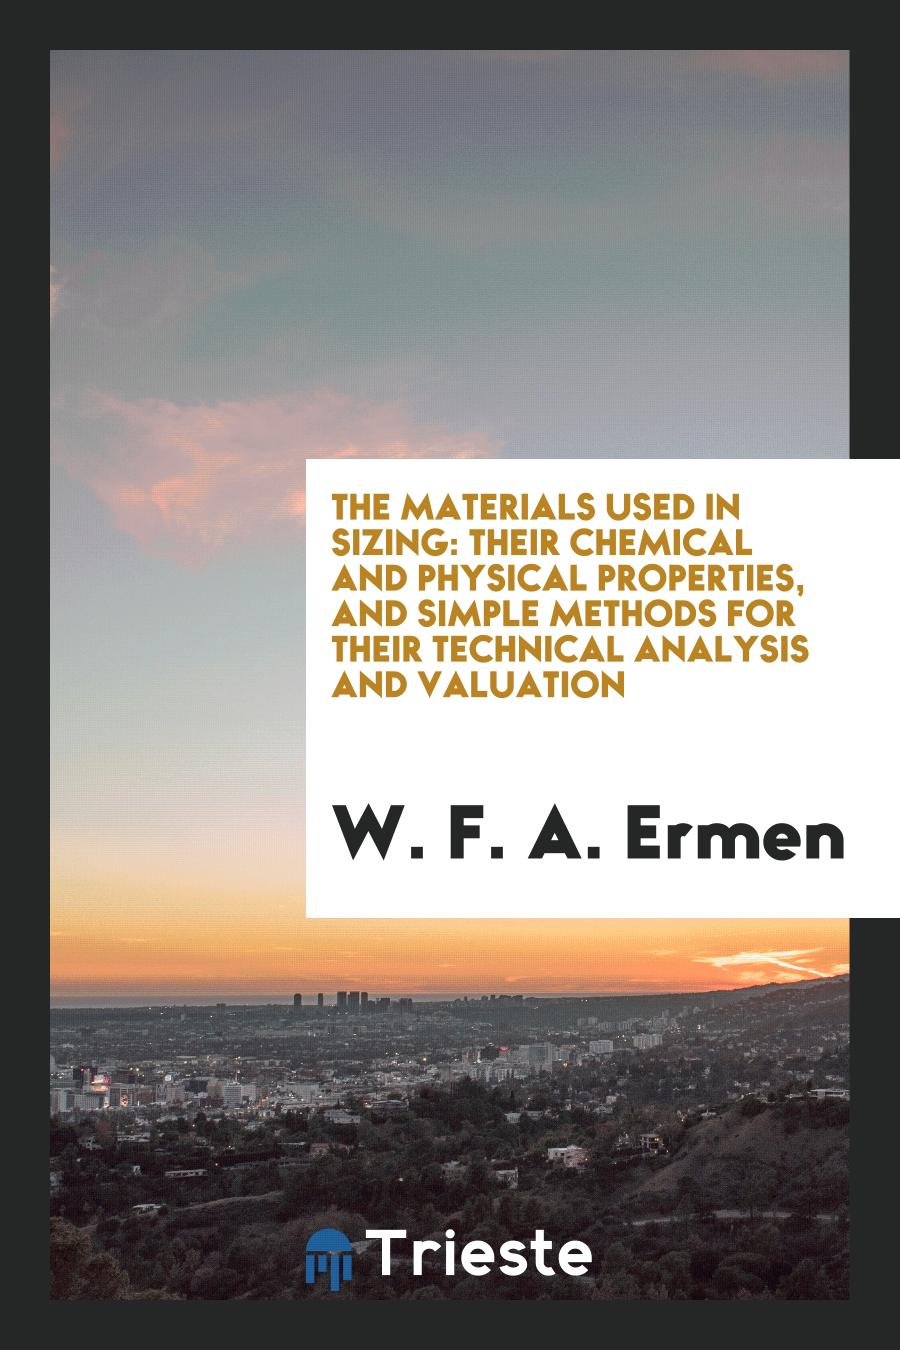 The Materials Used in Sizing: Their Chemical and Physical Properties, and Simple Methods for Their Technical Analysis and Valuation